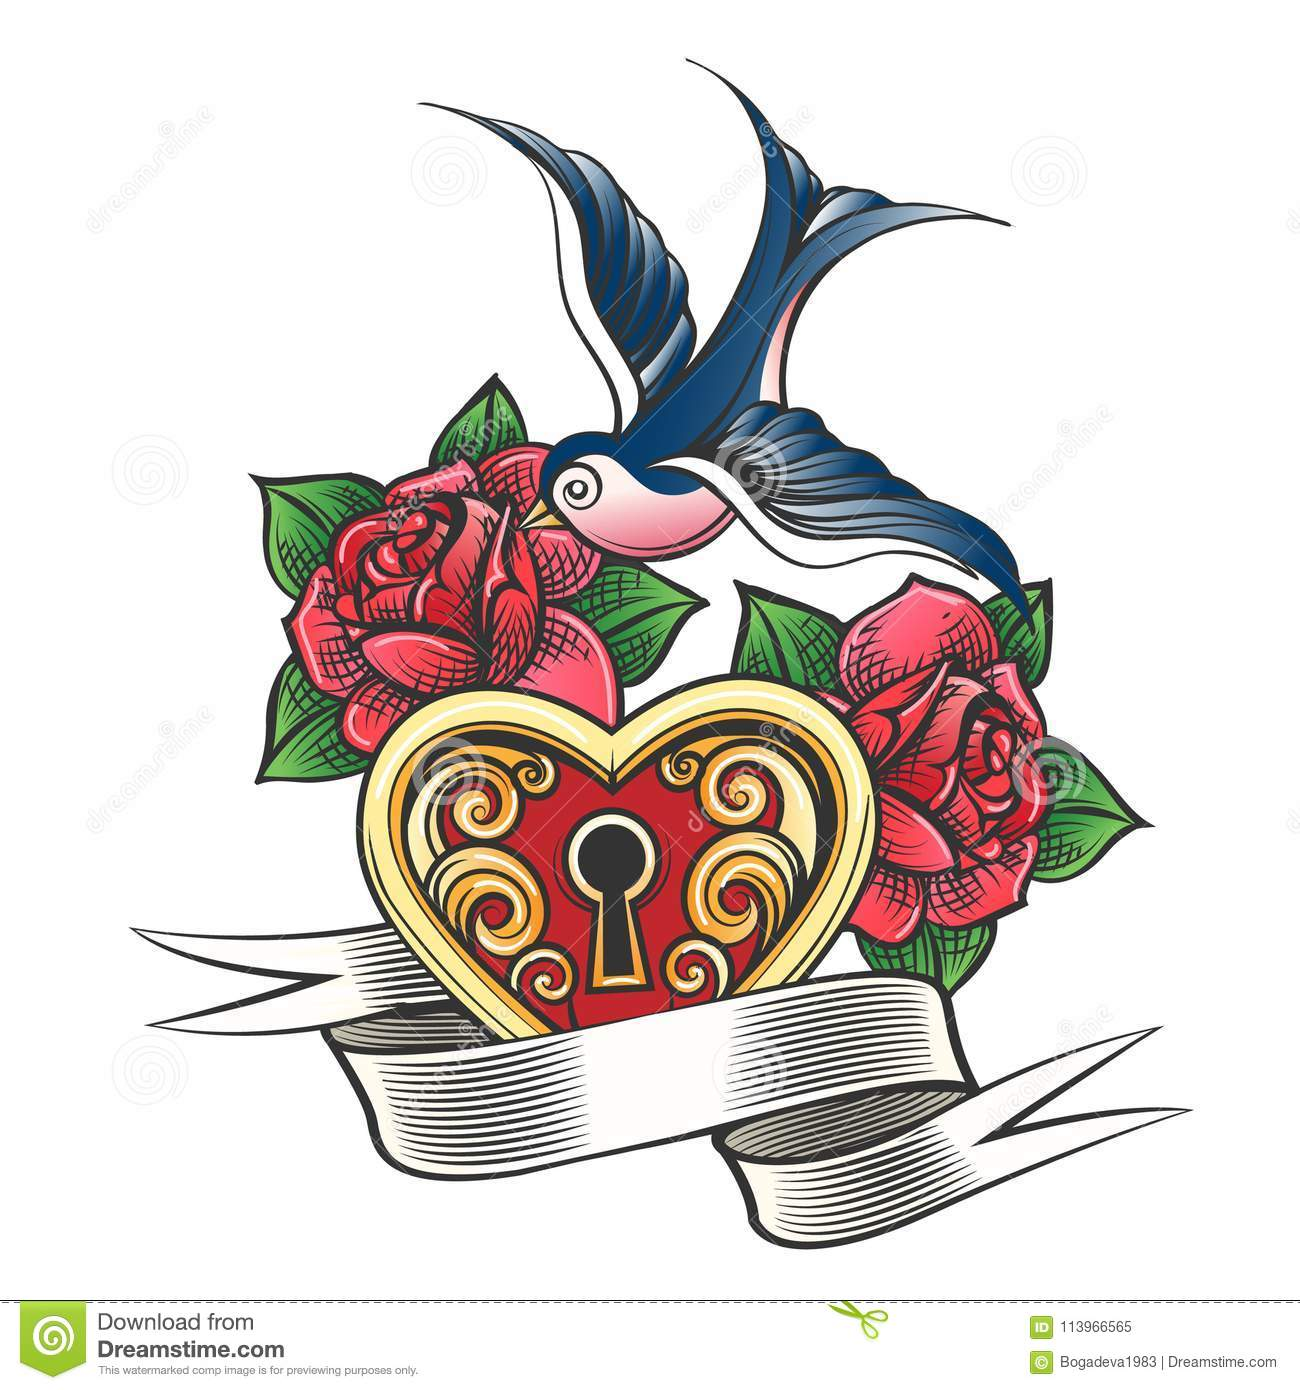 Swallow With Rose And Heart Tattoo Stock Illustration Illustration Of Heart Flower 113966565